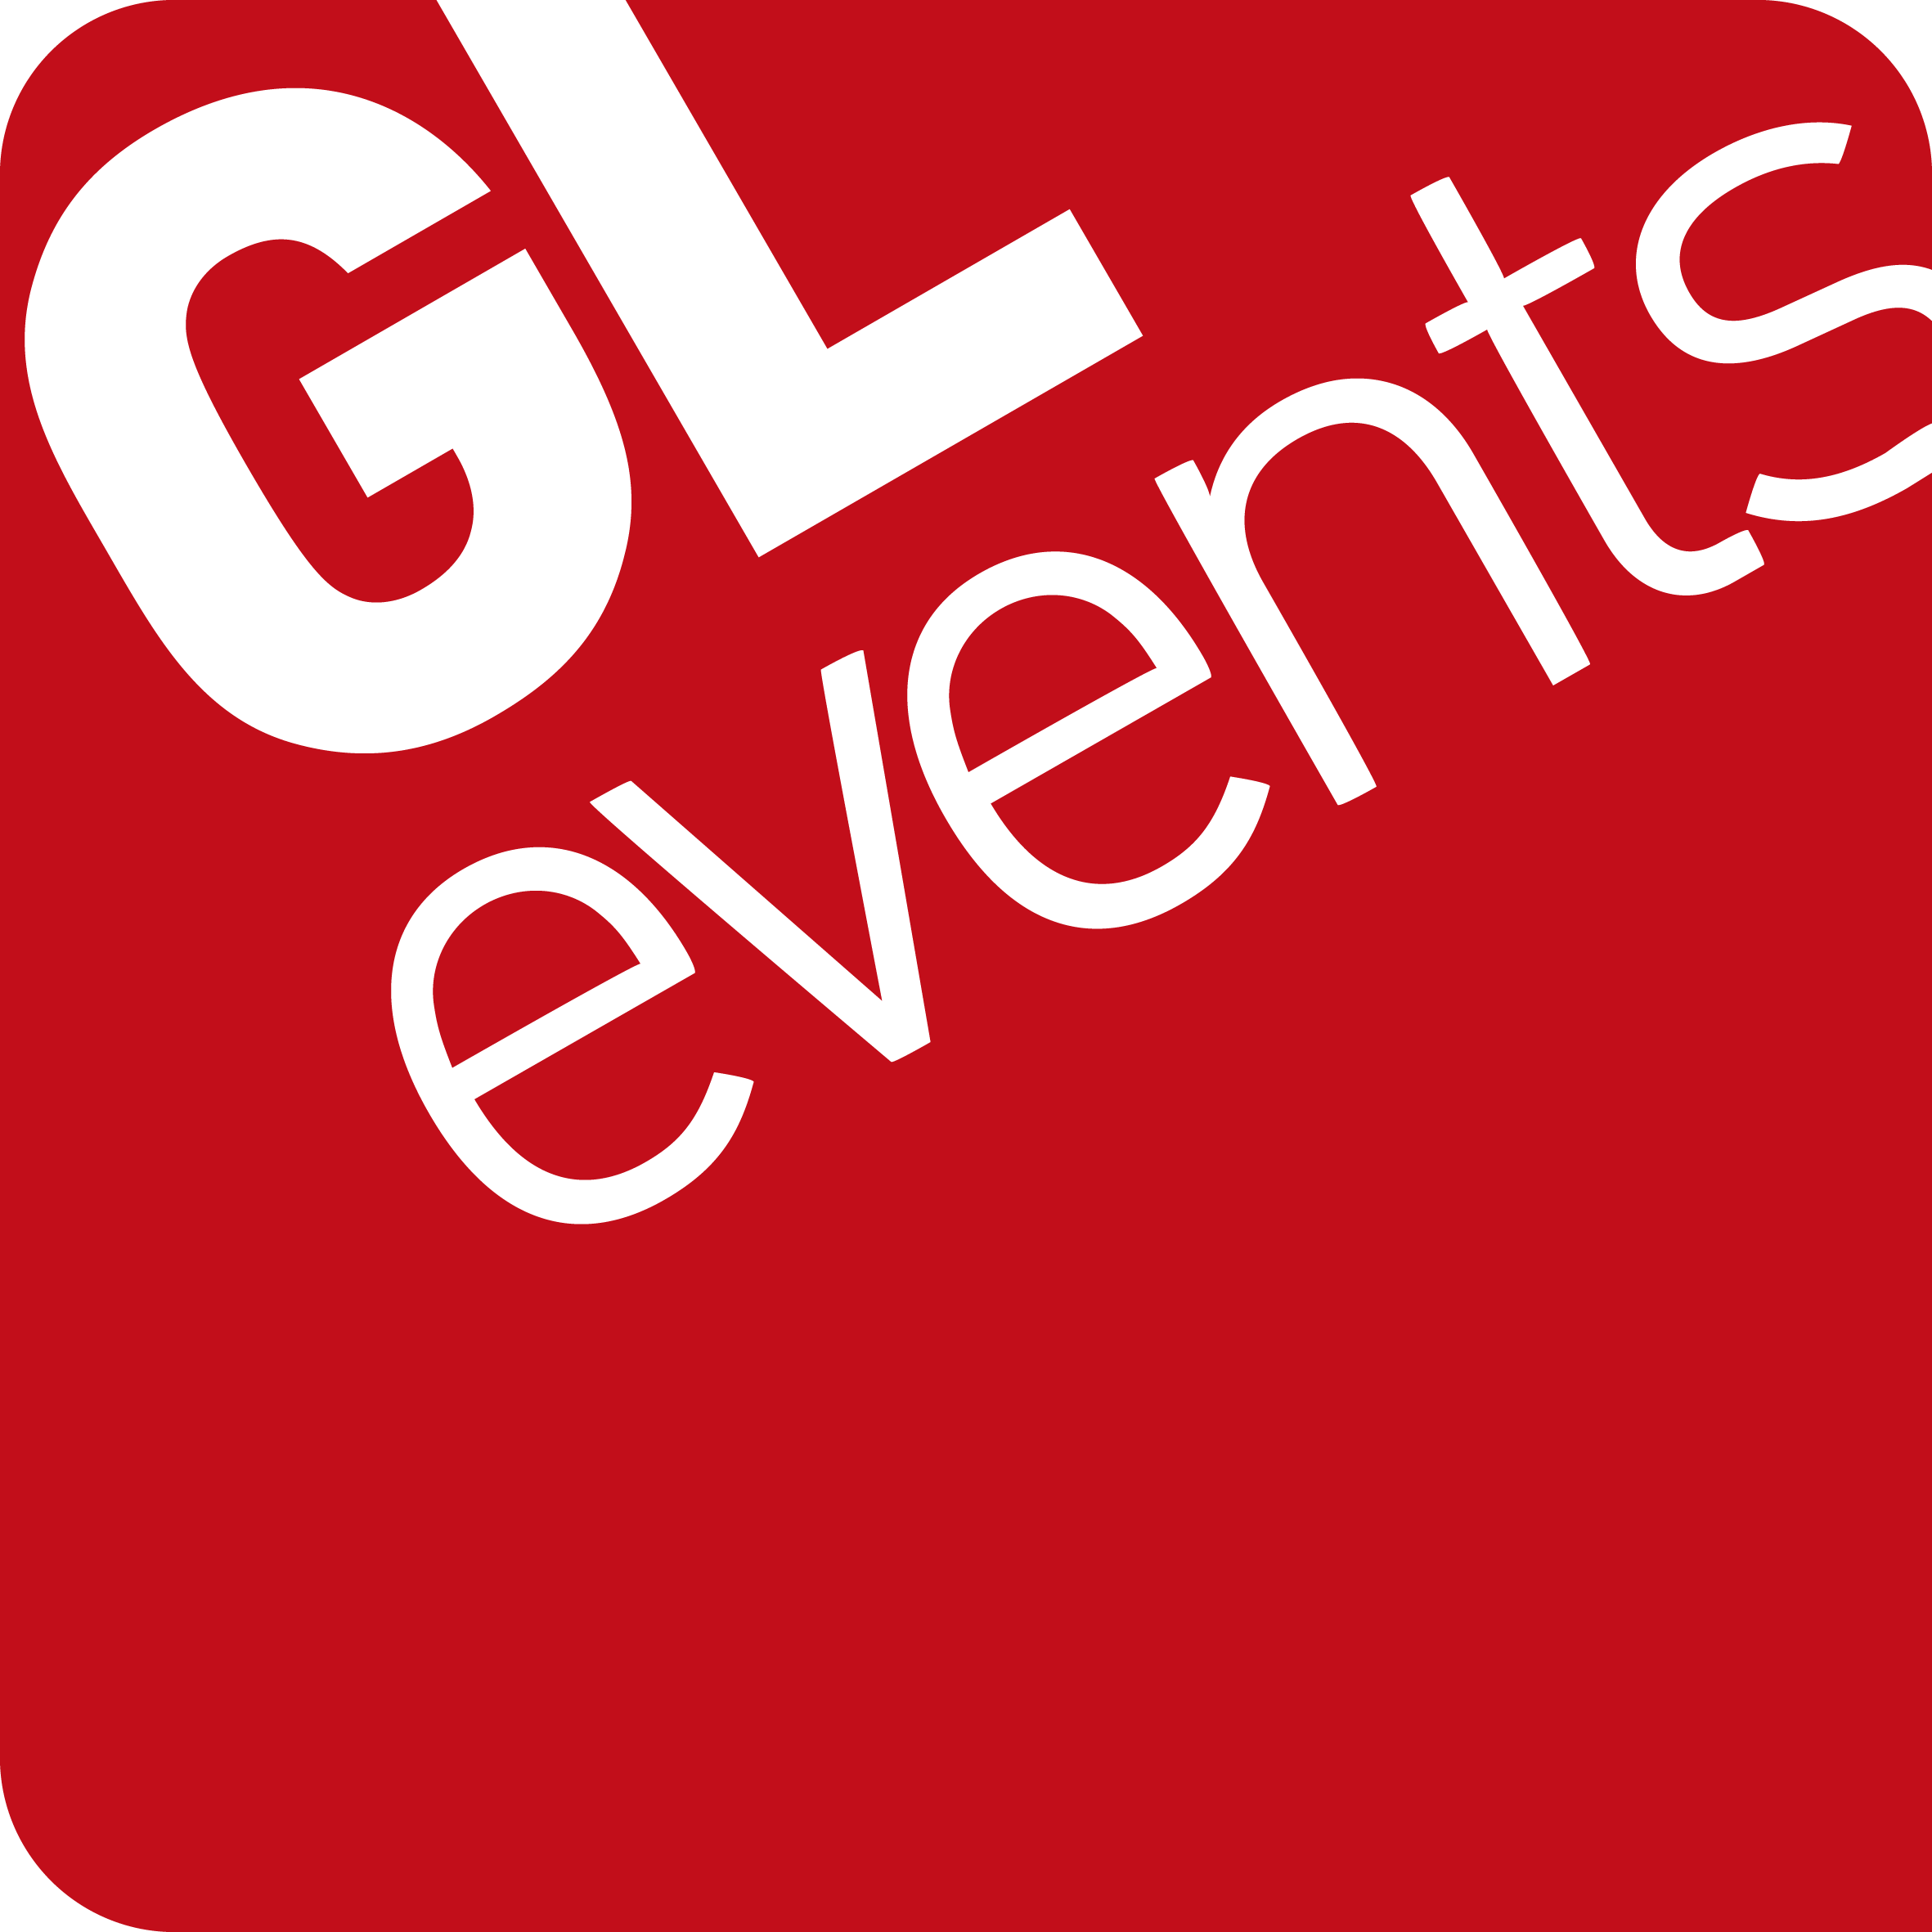 GL events Exhibitions